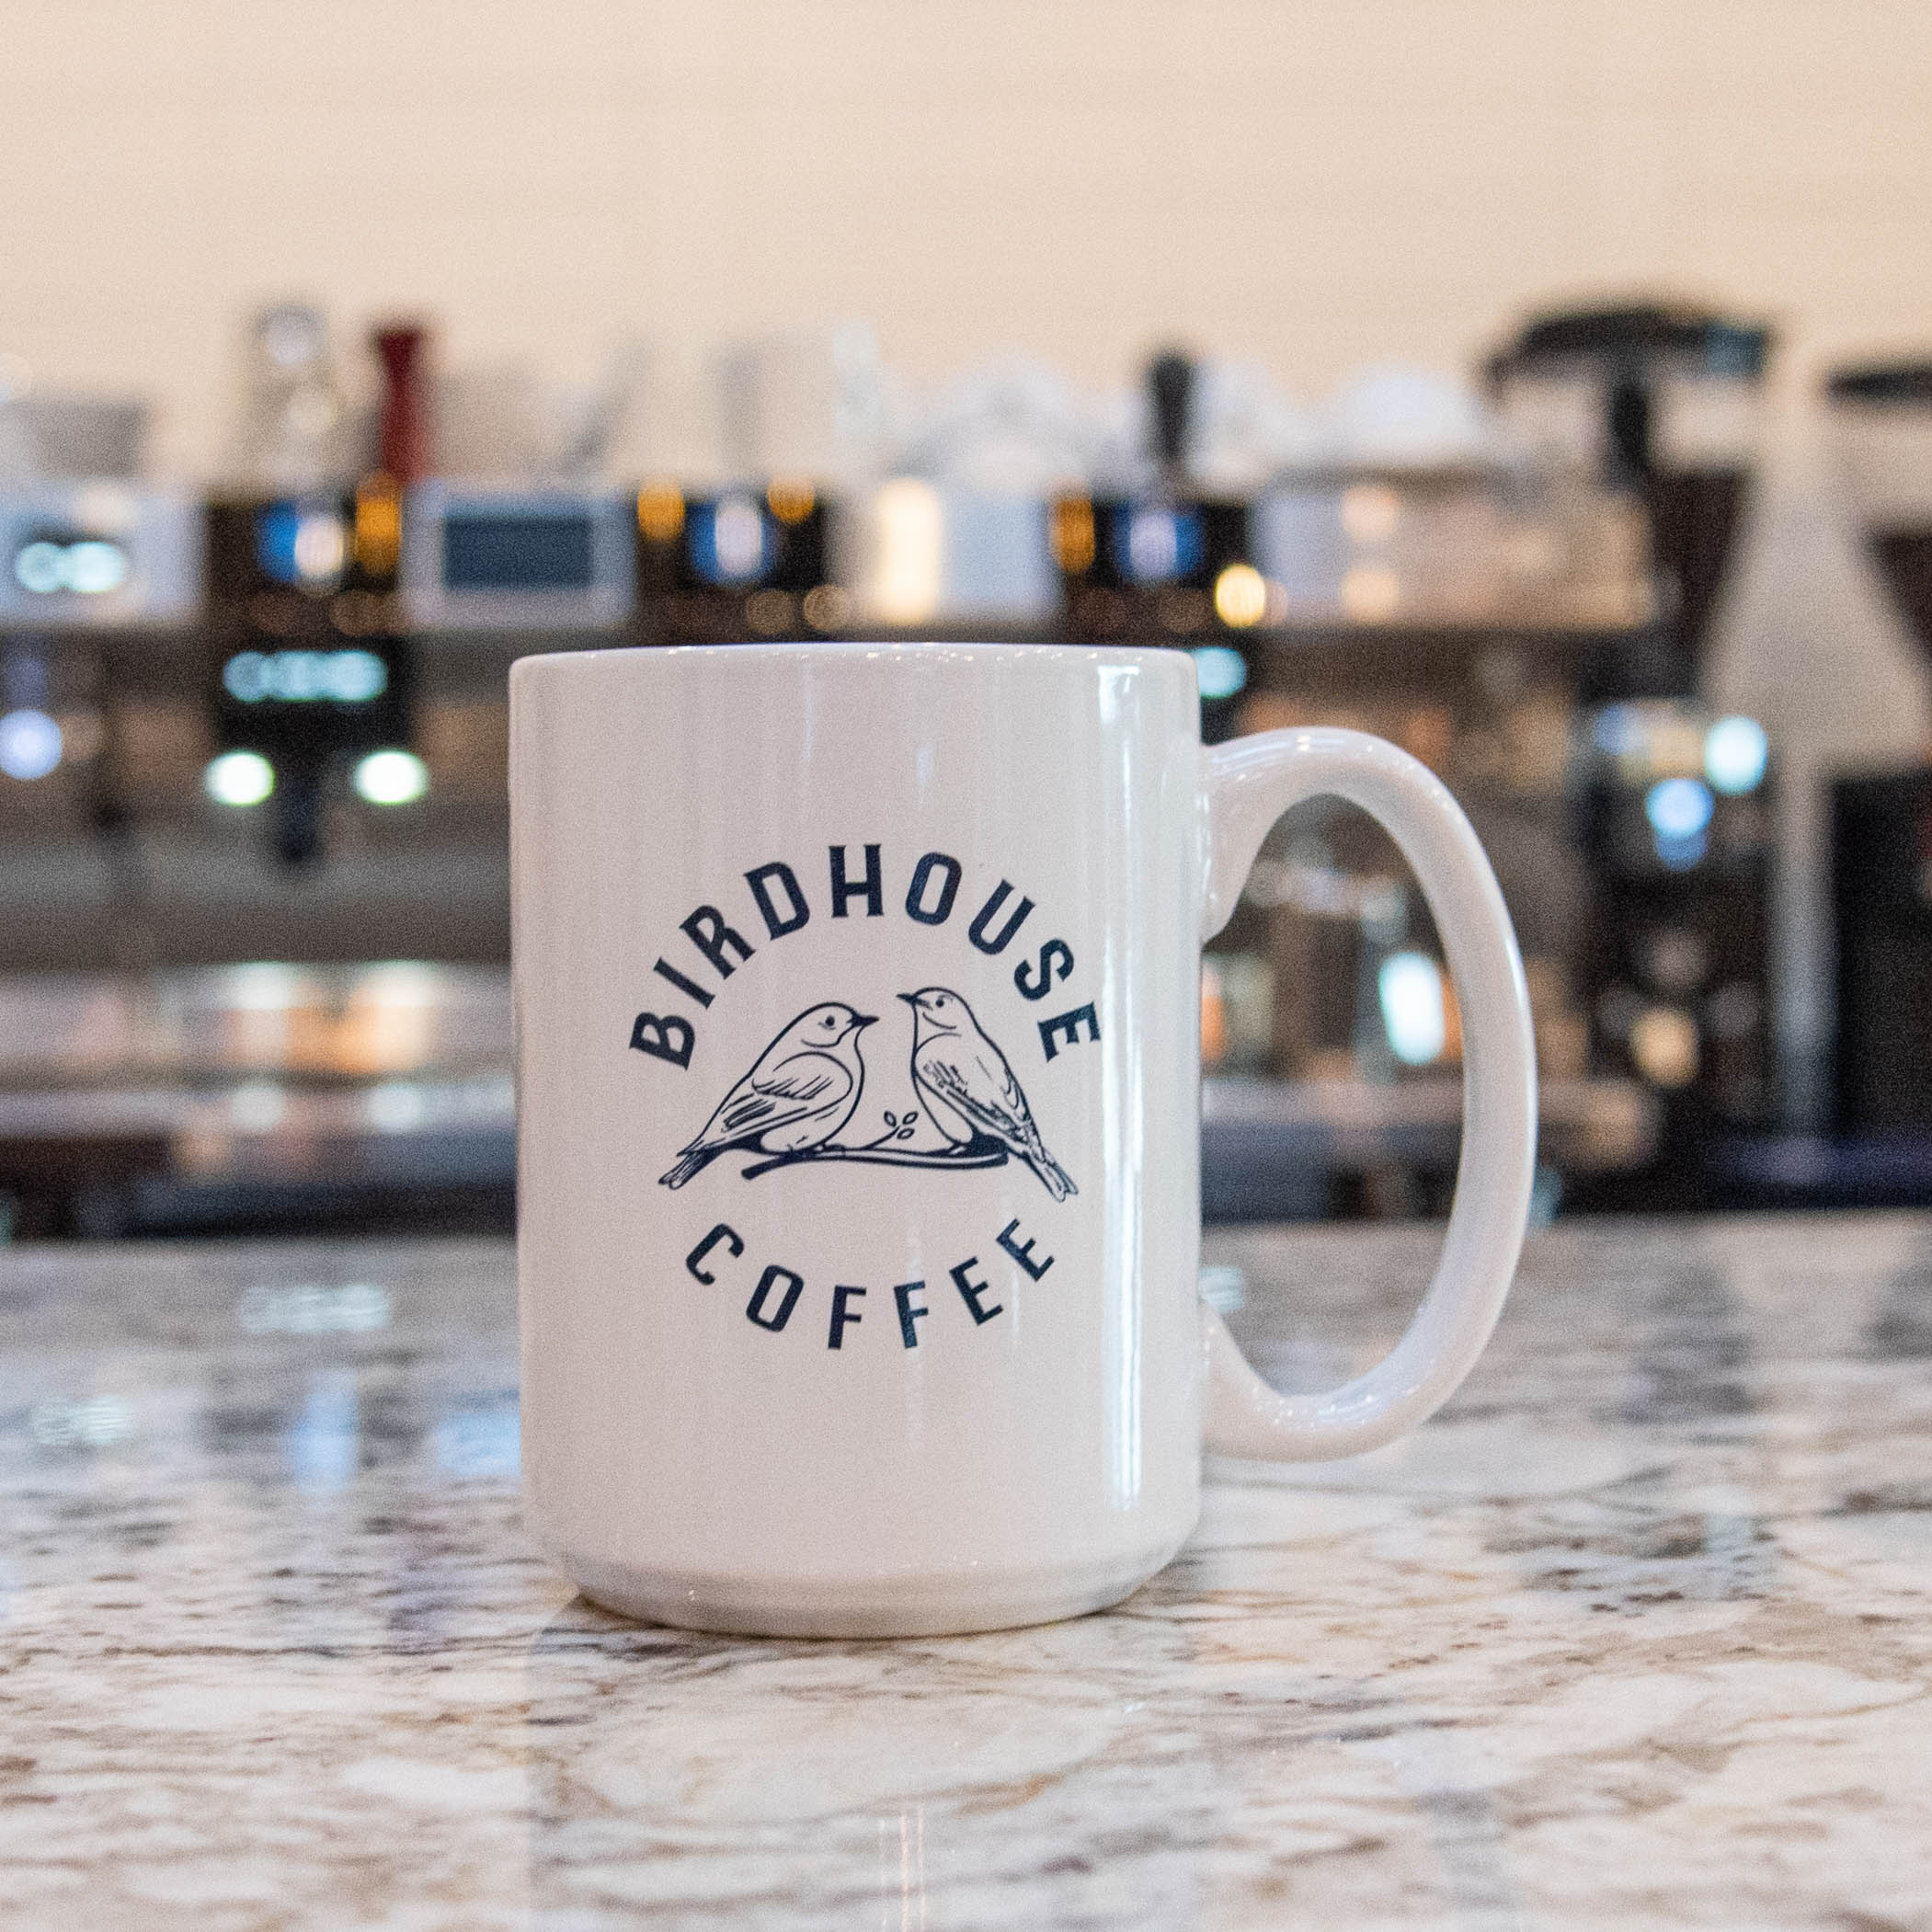 Birdhouse Coffee Logo Mug